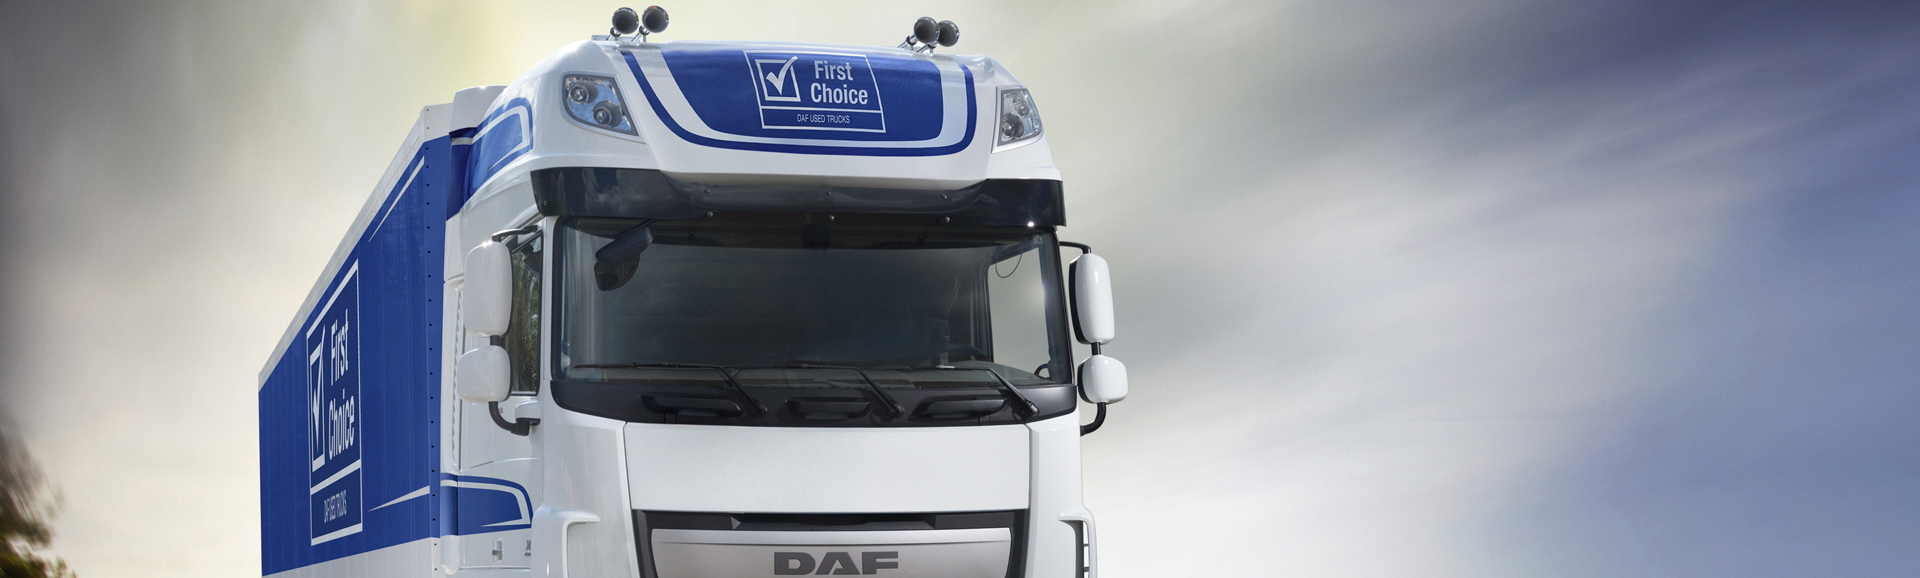 DAF-Used-Trucks-First-Choice_2016271-HR-teaser